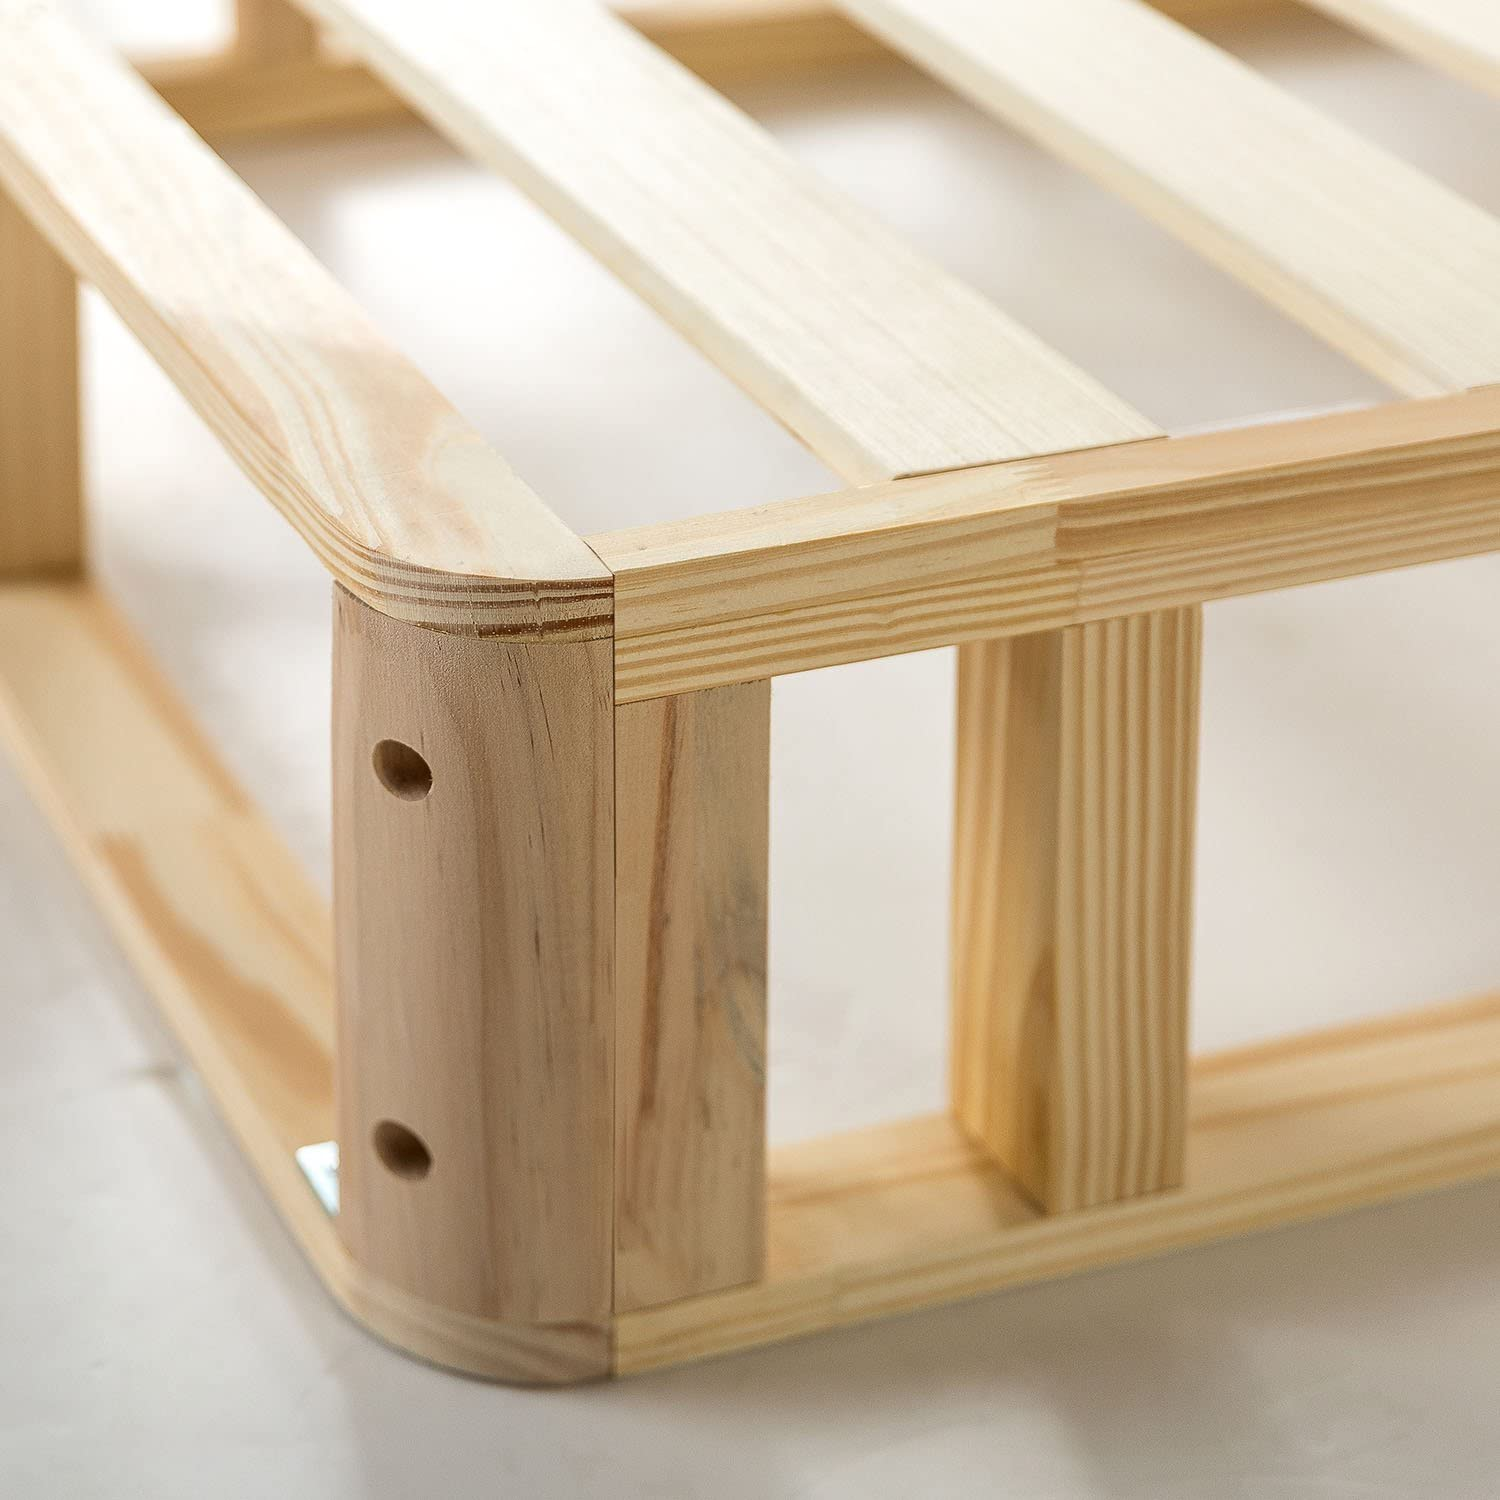 Zinus Edgar 4 Inch Wood Box Spring / Mattress Foundation / Sturdy Wood Structure / Low Profile / Easy Assembly, King: Furniture & Decor